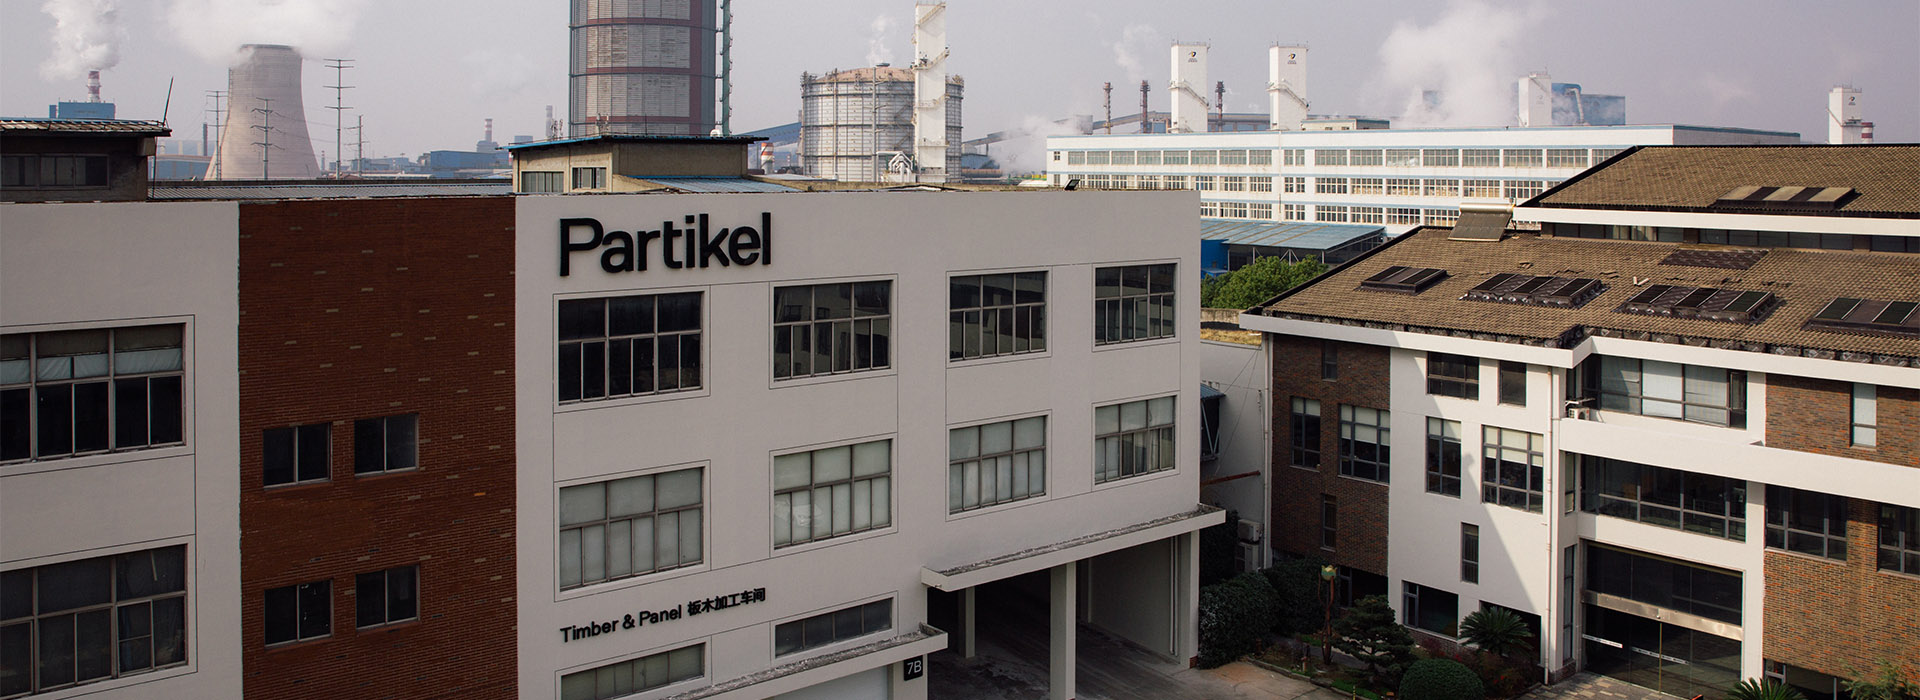 Photograph of Partikel building with Patikel logo